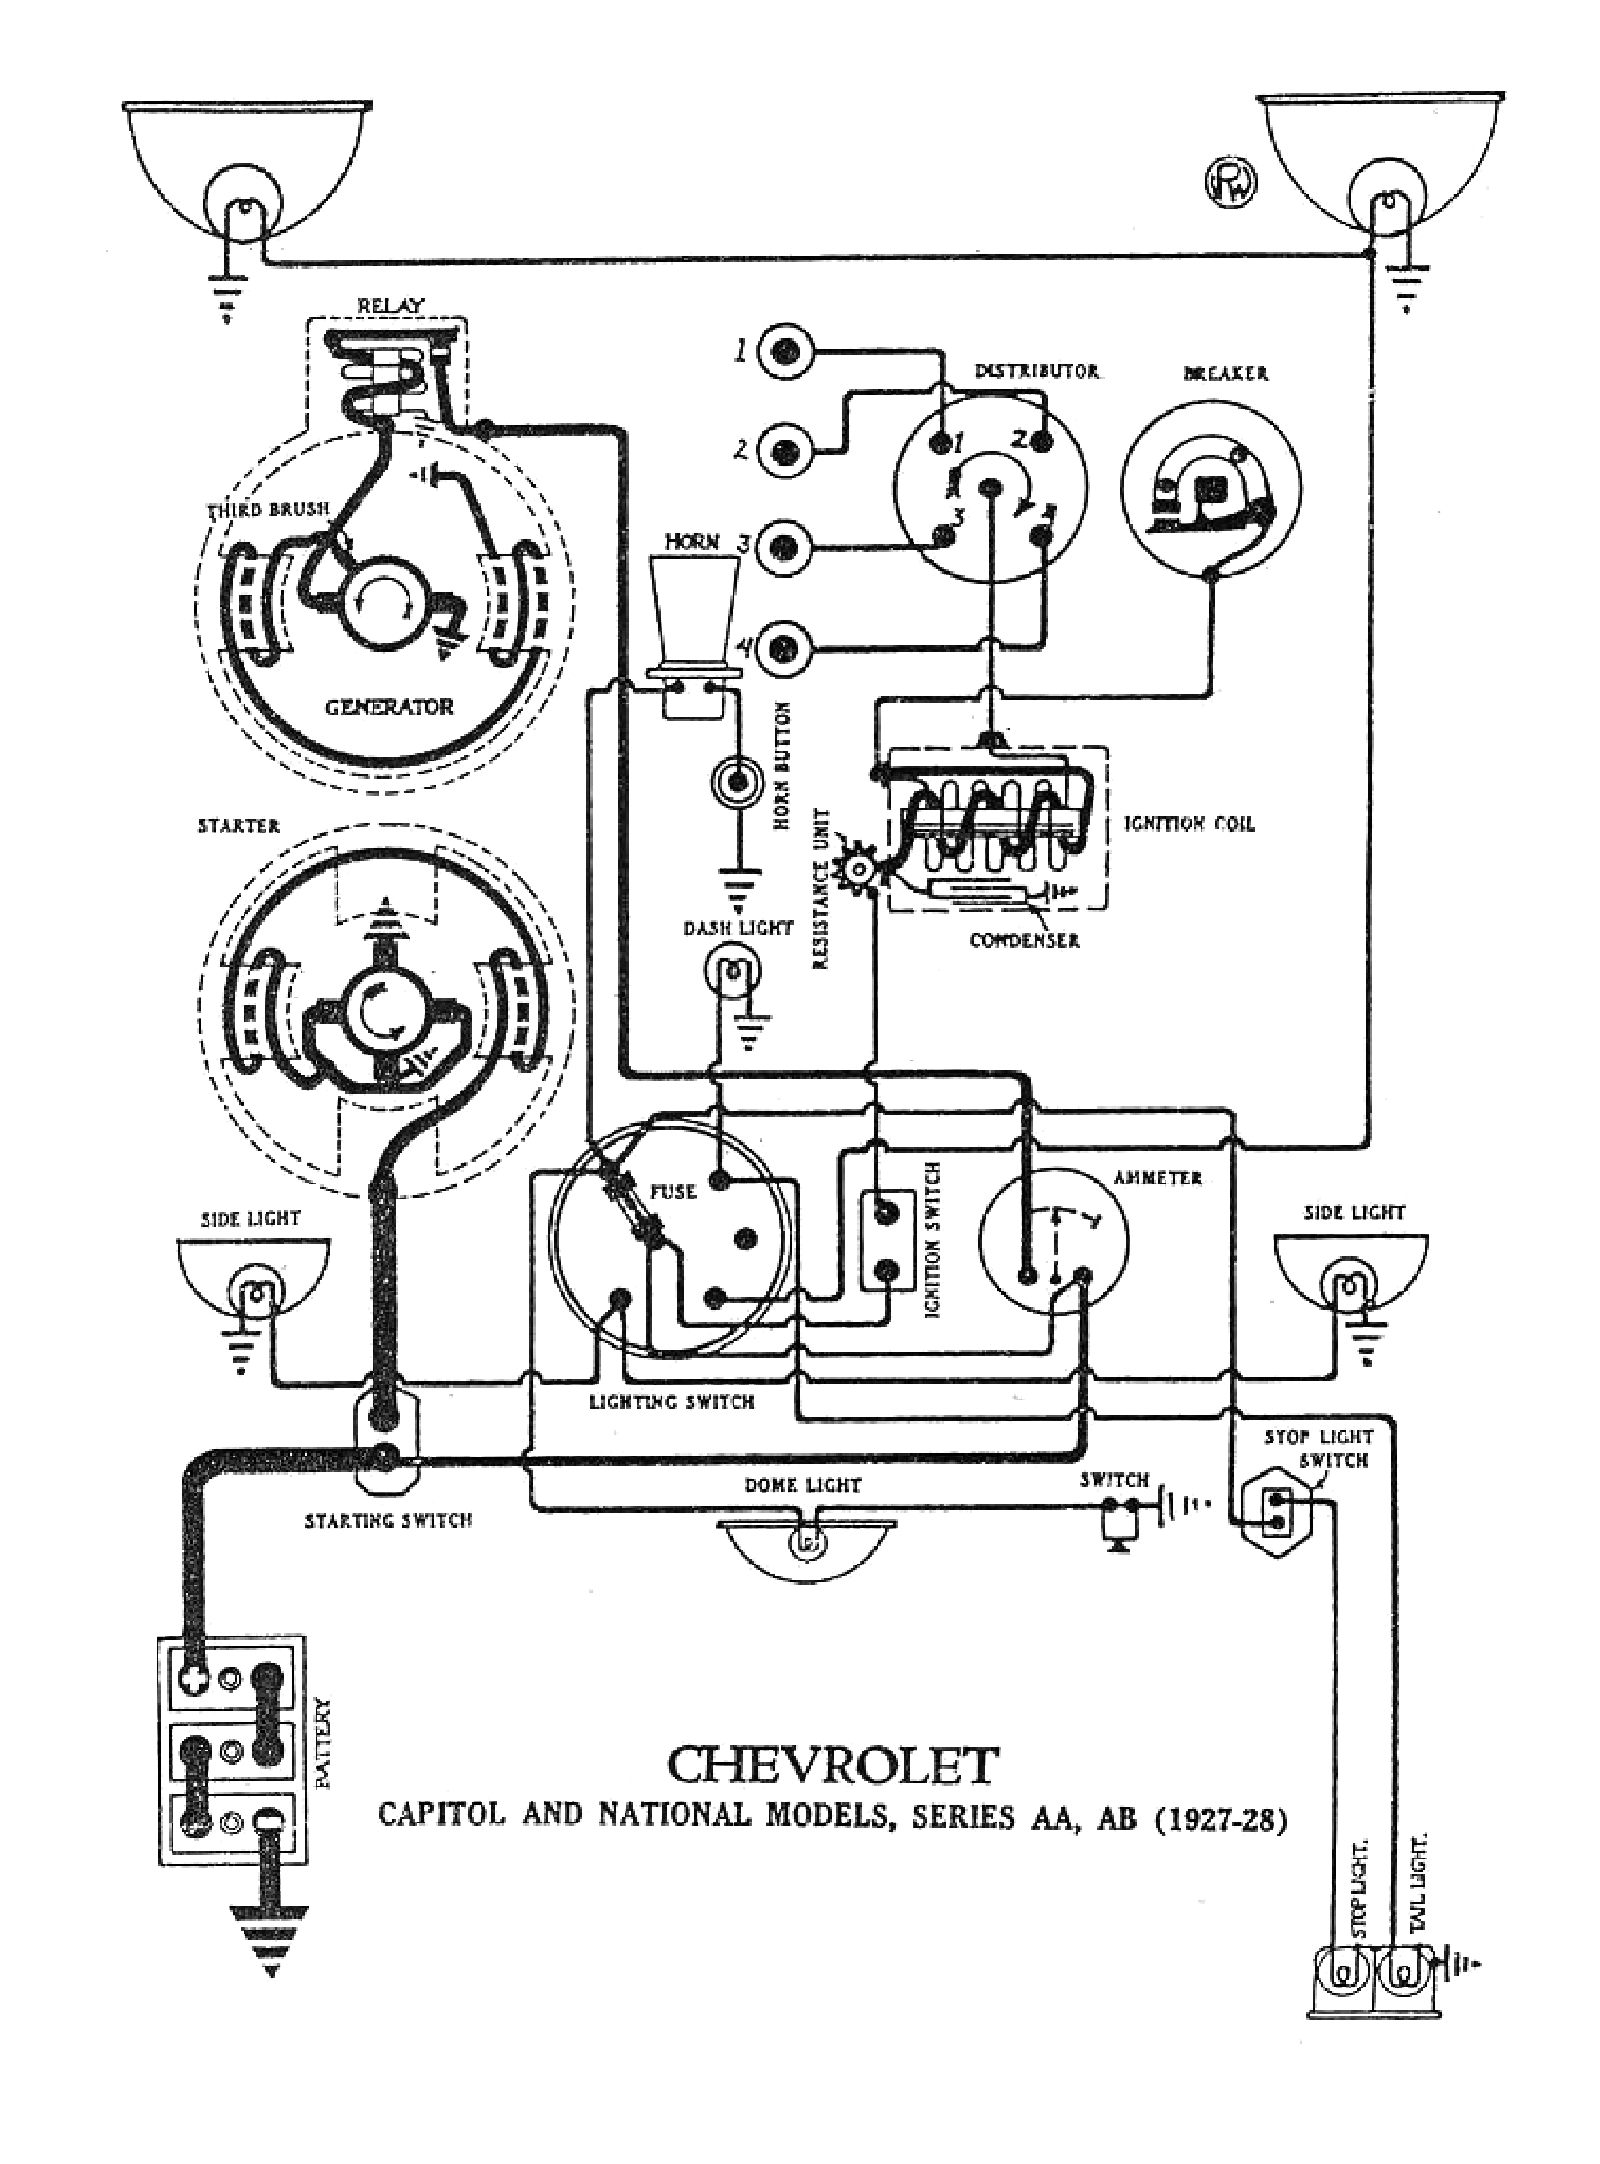 2728wiring chevy wiring diagrams Coil and Distributor Wiring Diagram at sewacar.co